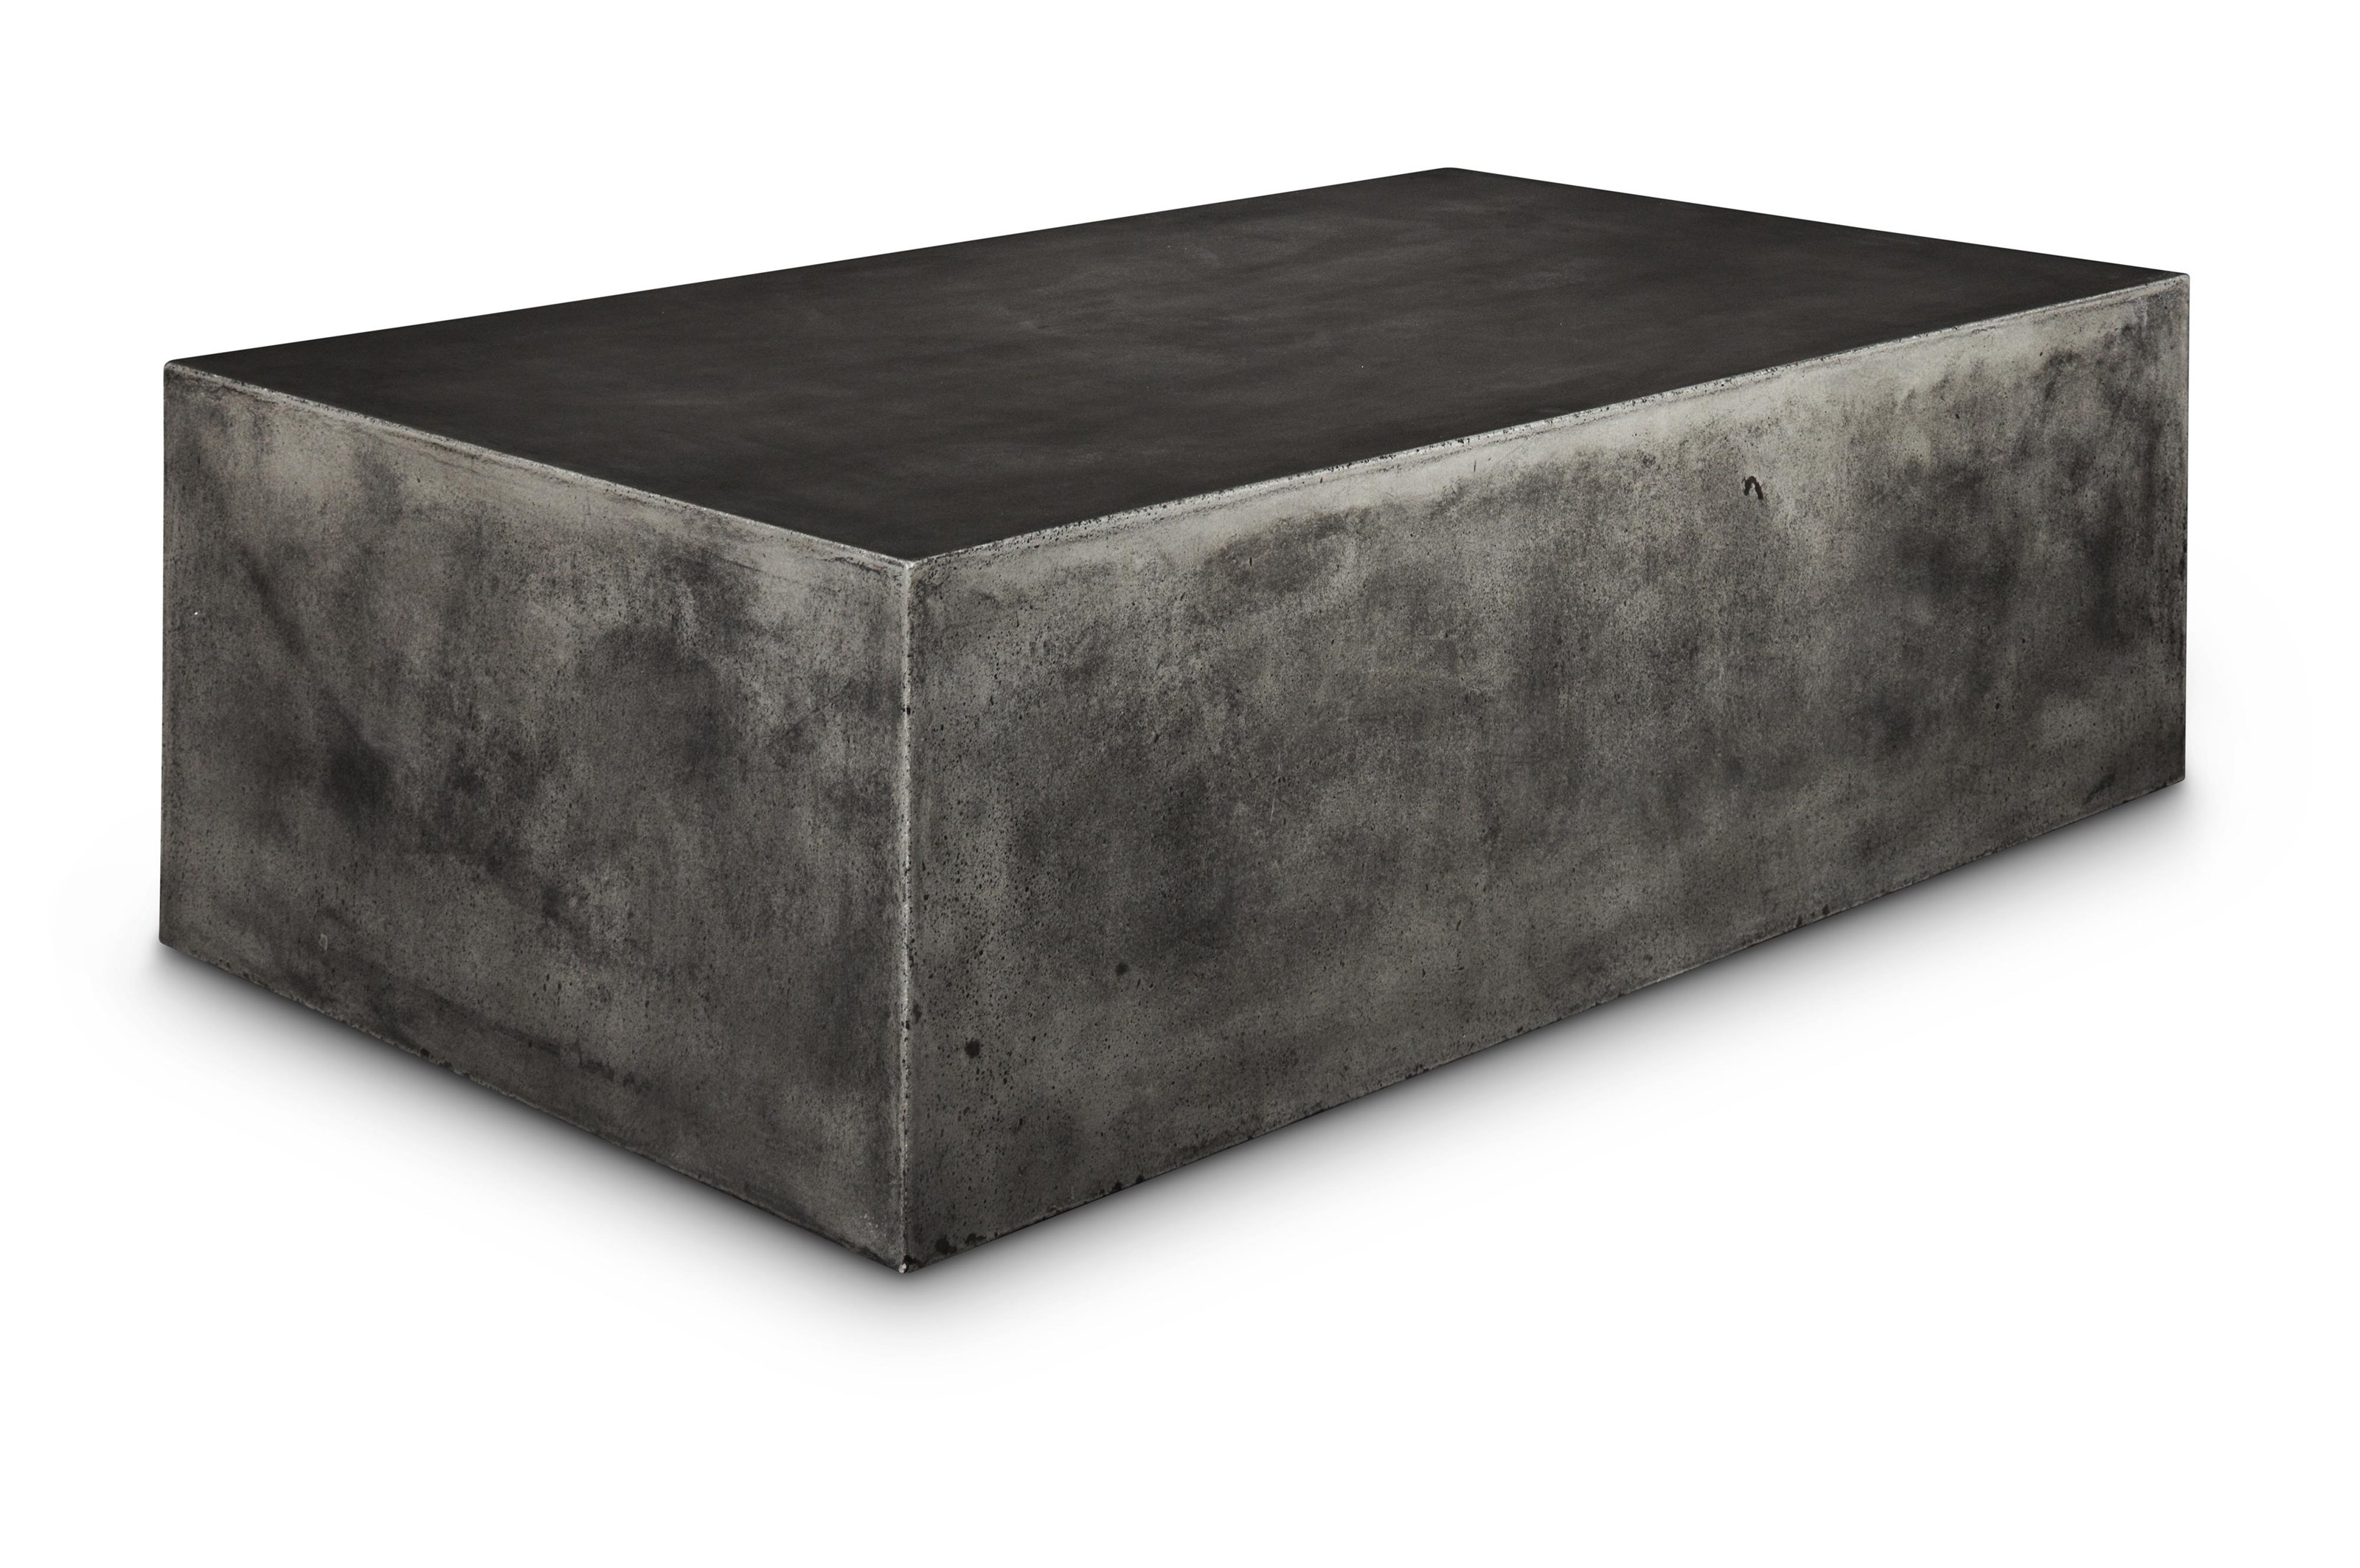 Urbia Bloc Coffee Table - Item Number: VGS-BLOC-RECT-CT